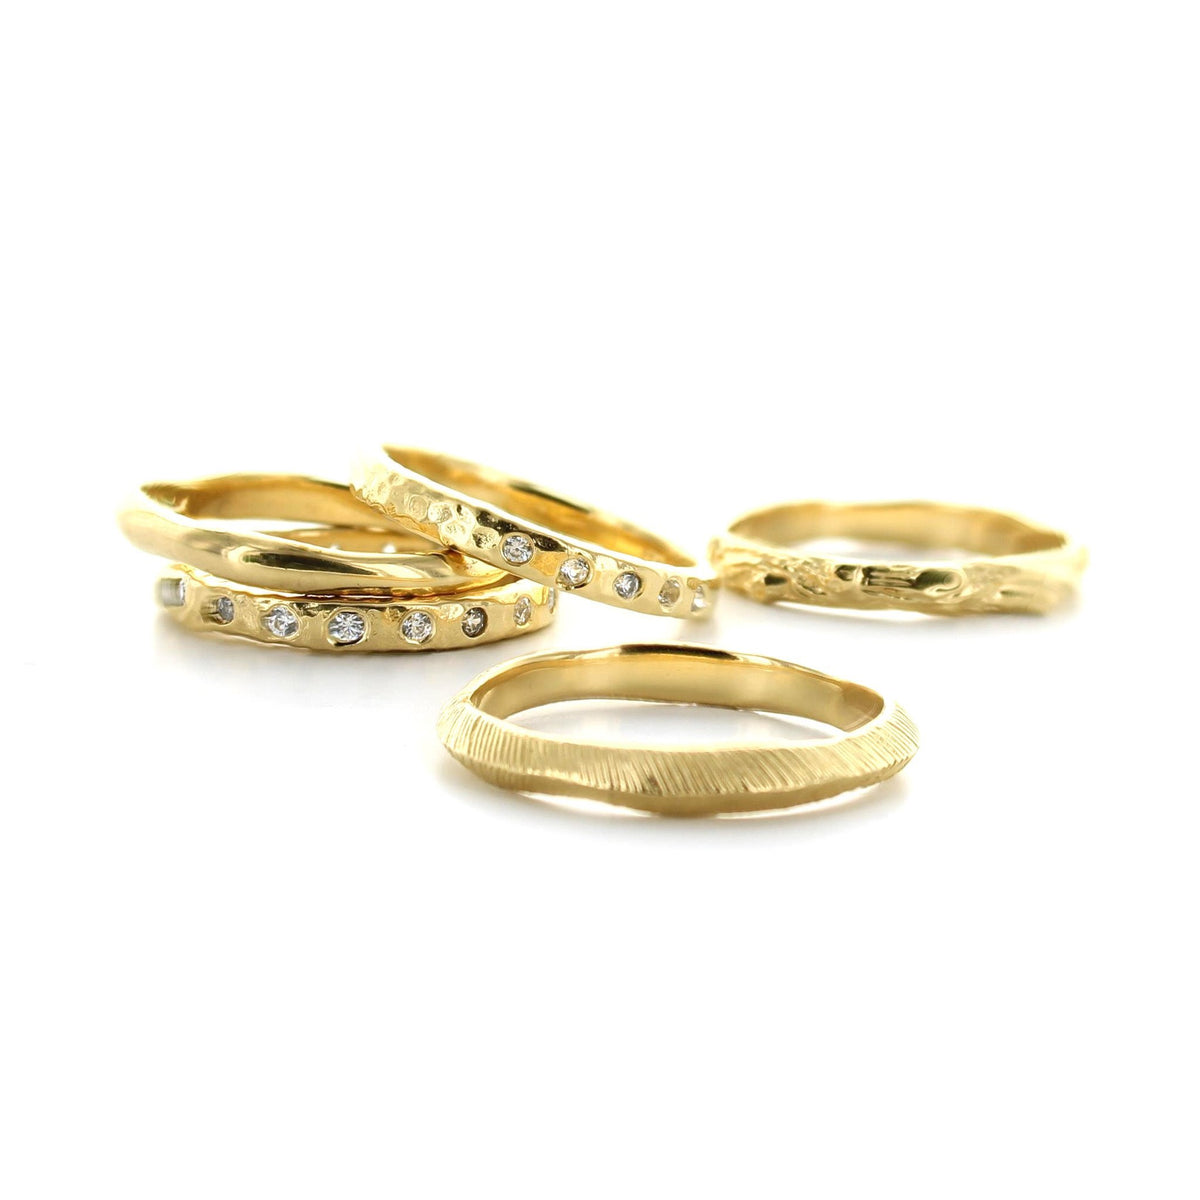 ENDEAR STACKING RING & PENDANT GOLD - SO PRETTY CARA COTTER